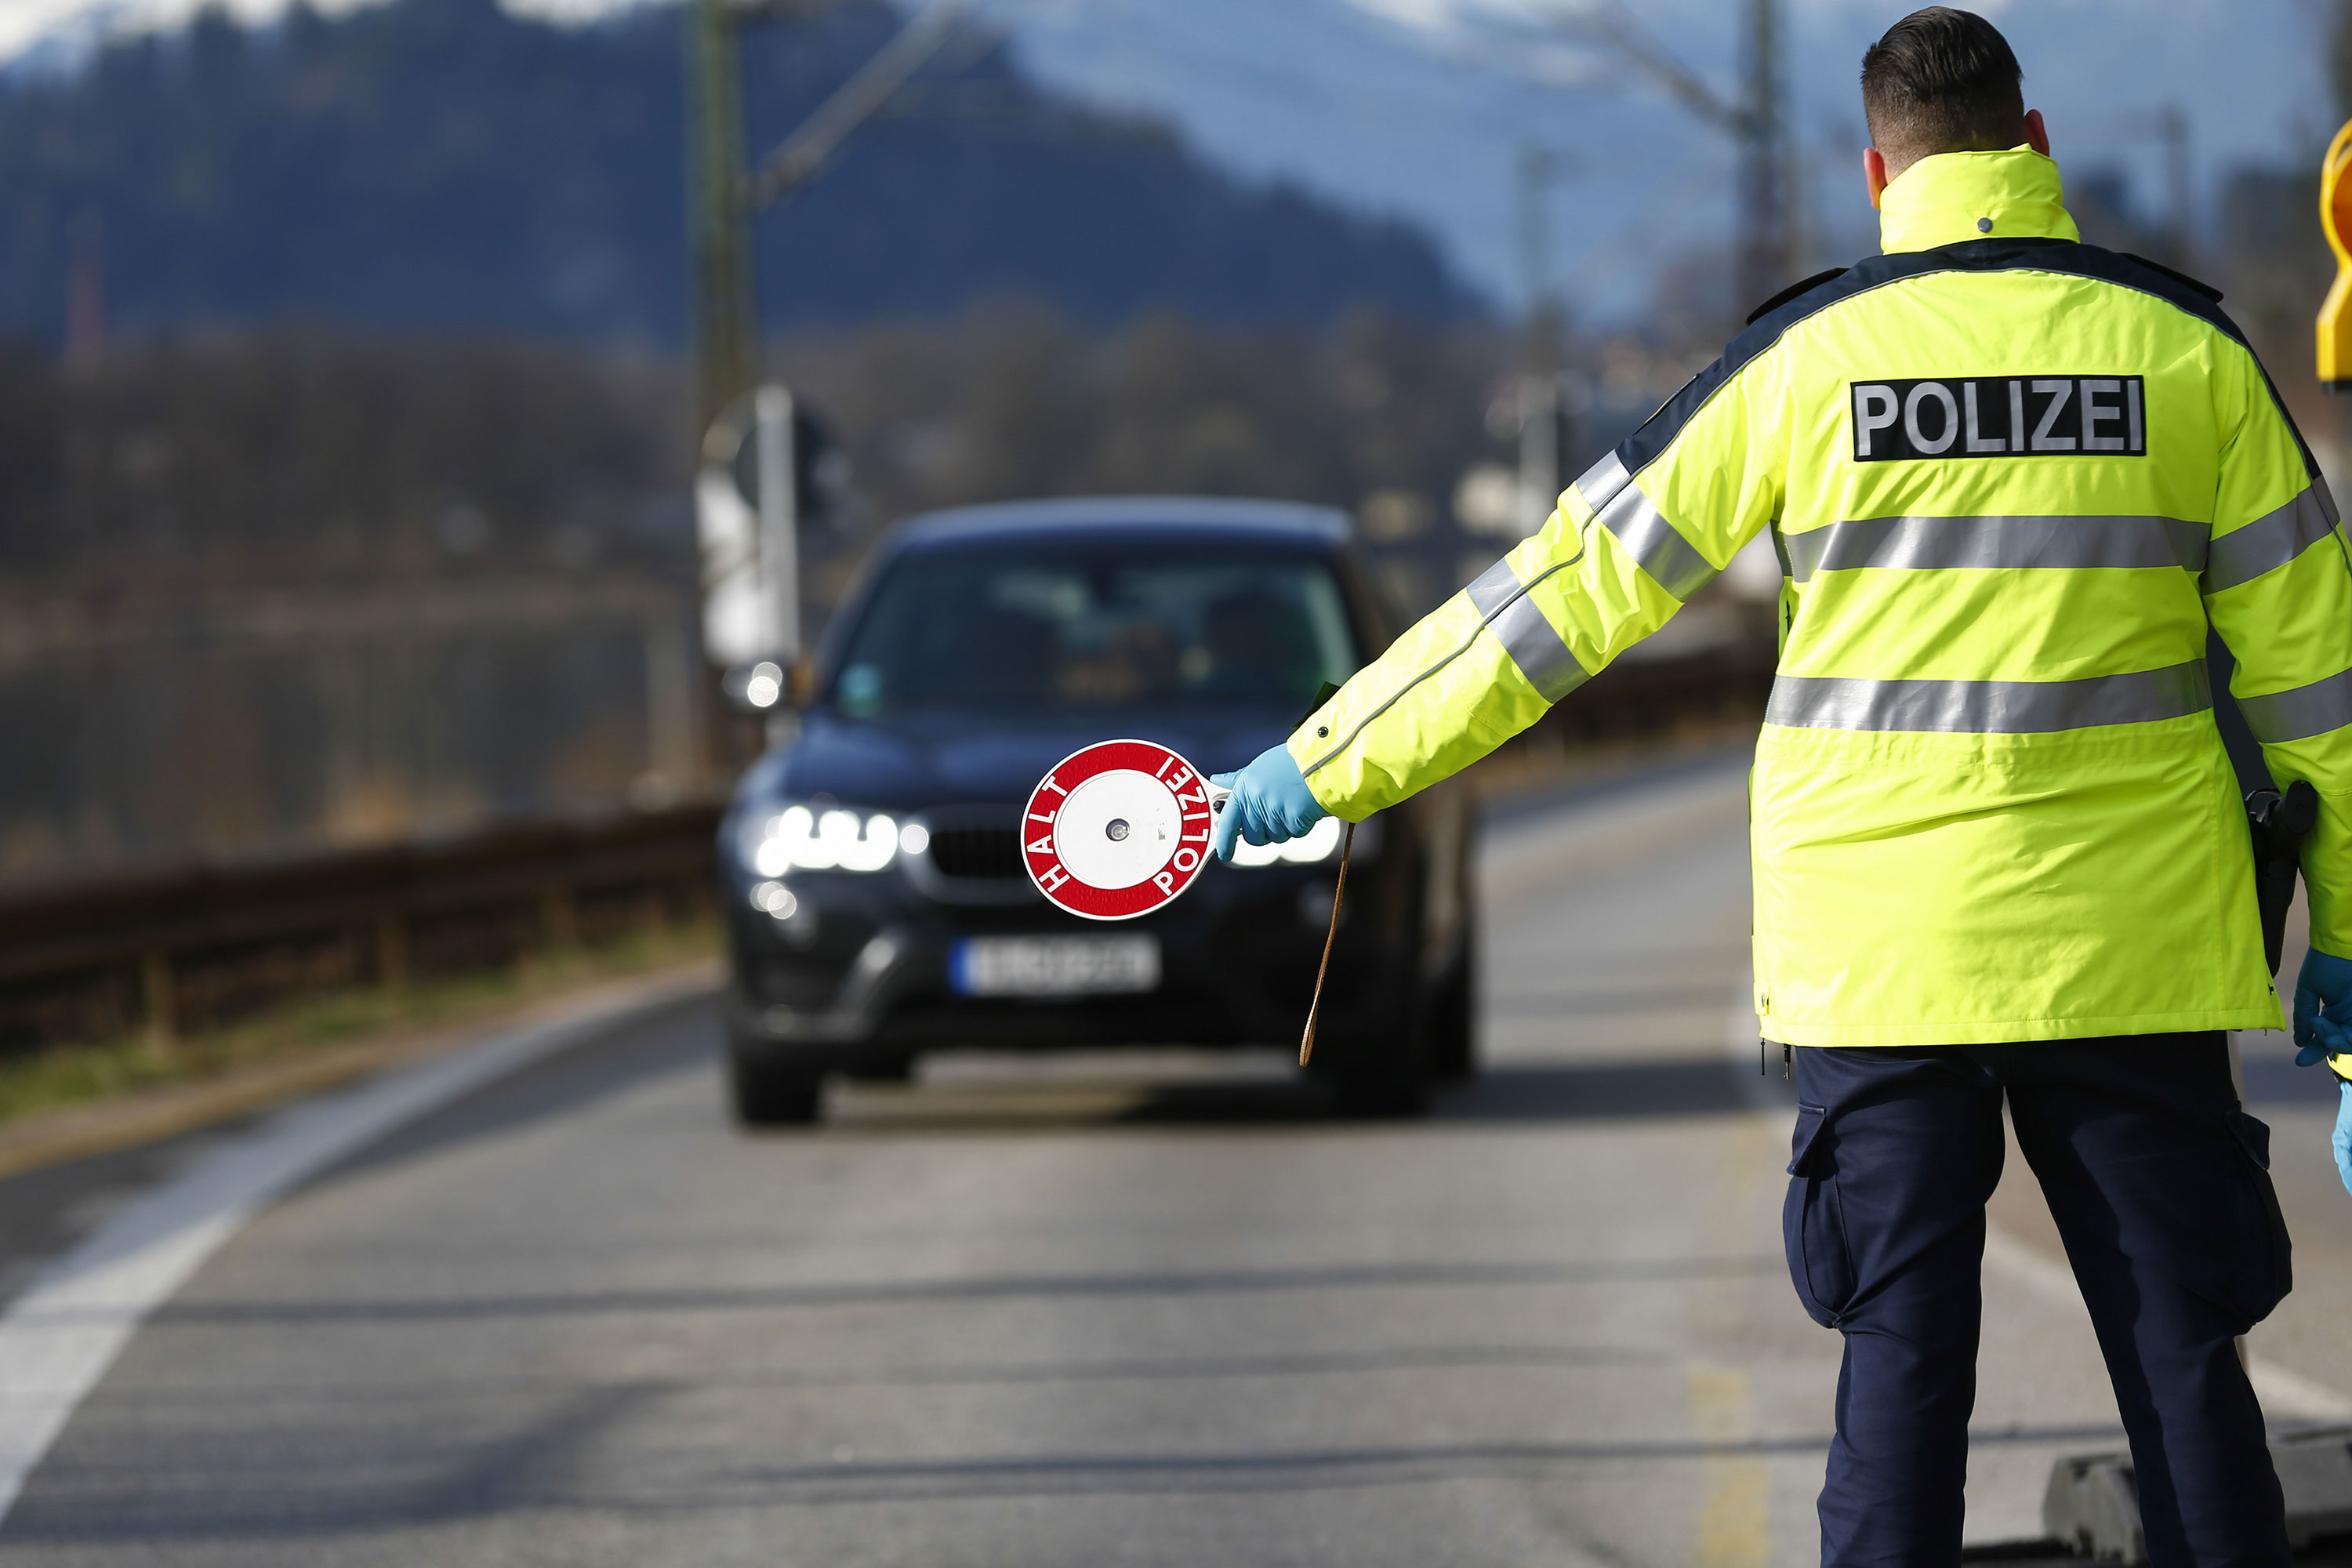 A police officer halts traffic on Germany's border with Austria to check drivers' paperwork in Kiefersfelden, Germany, on March 17.